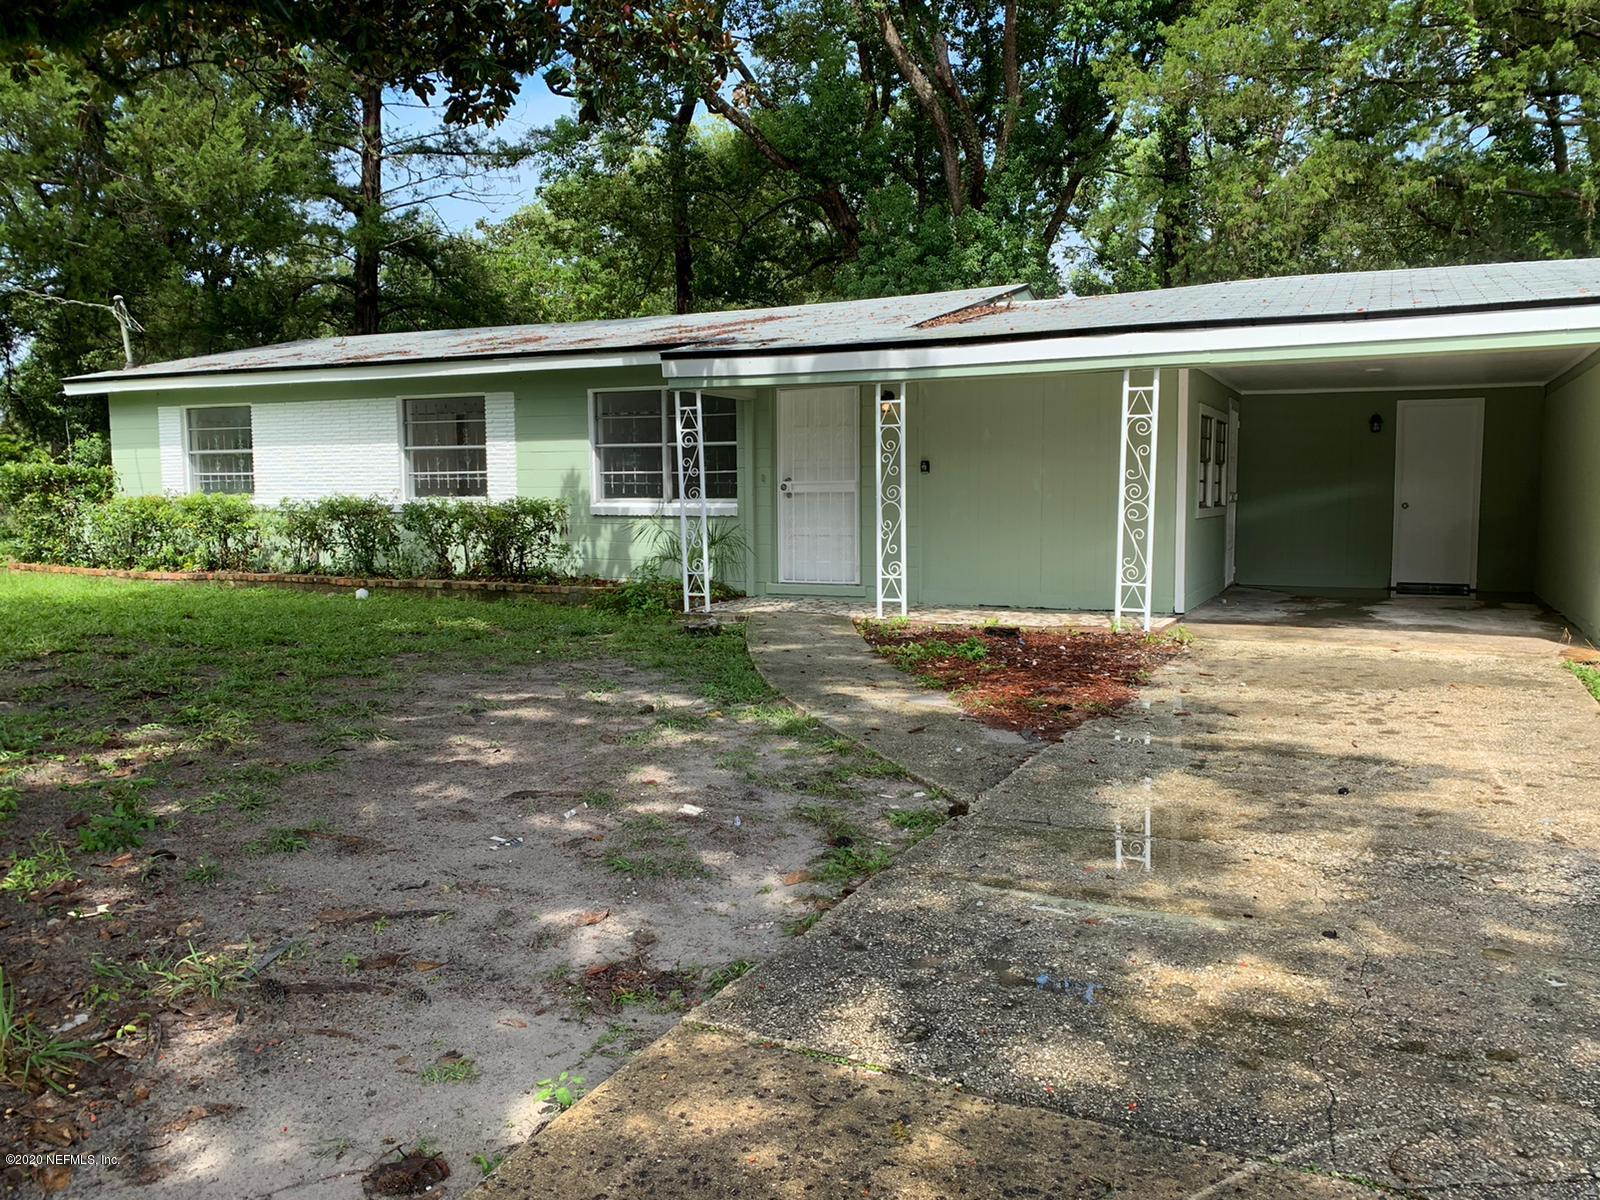 5015 TALLYHO, JACKSONVILLE, FLORIDA 32208, 3 Bedrooms Bedrooms, ,1 BathroomBathrooms,Residential,For sale,TALLYHO,1070878